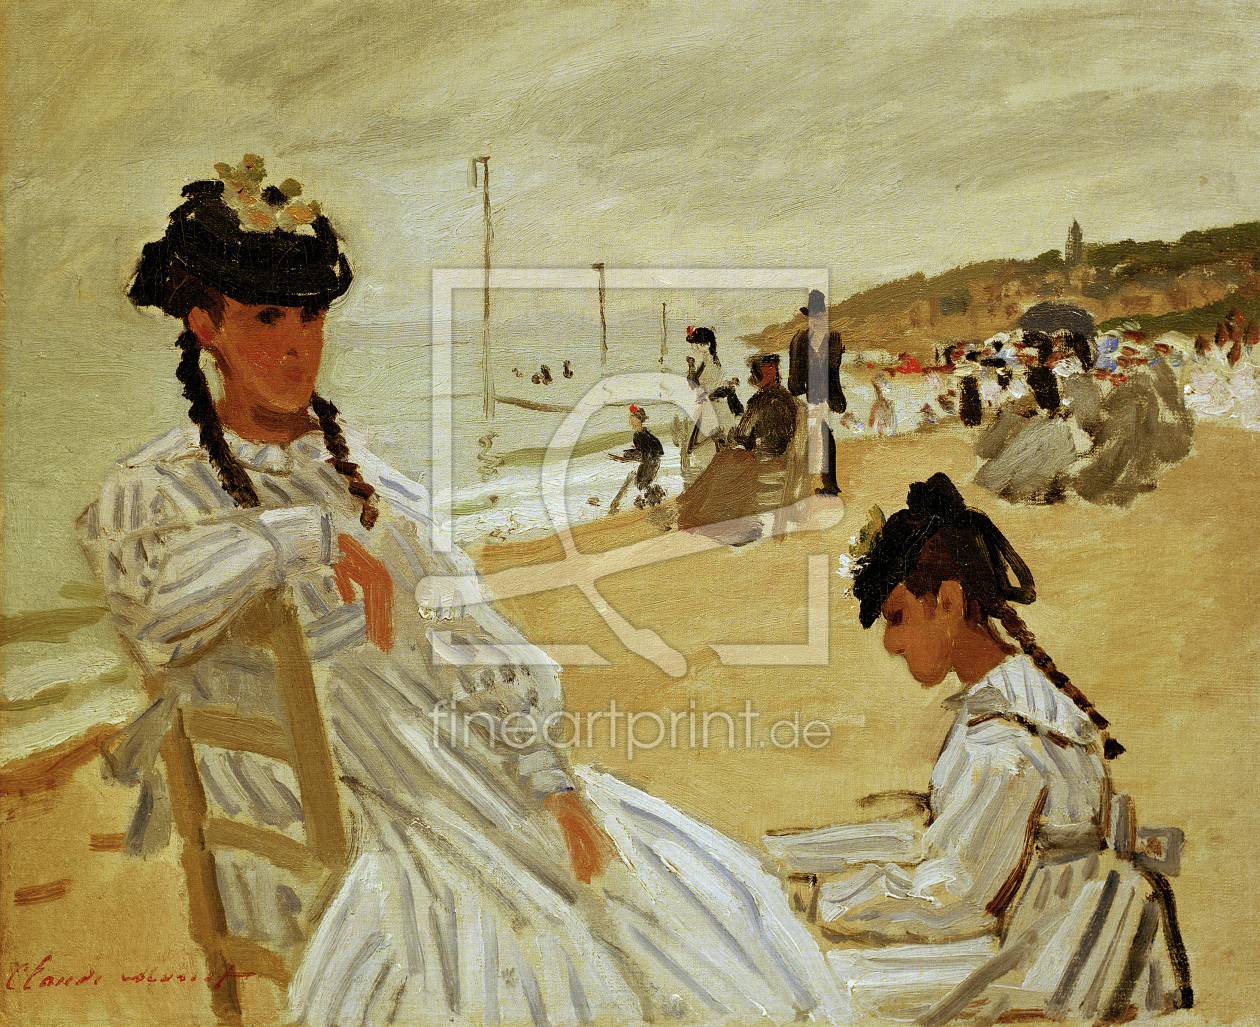 Bild-Nr.: 30004222 Monet / On the beach in Trouville / 1870 erstellt von Monet, Claude